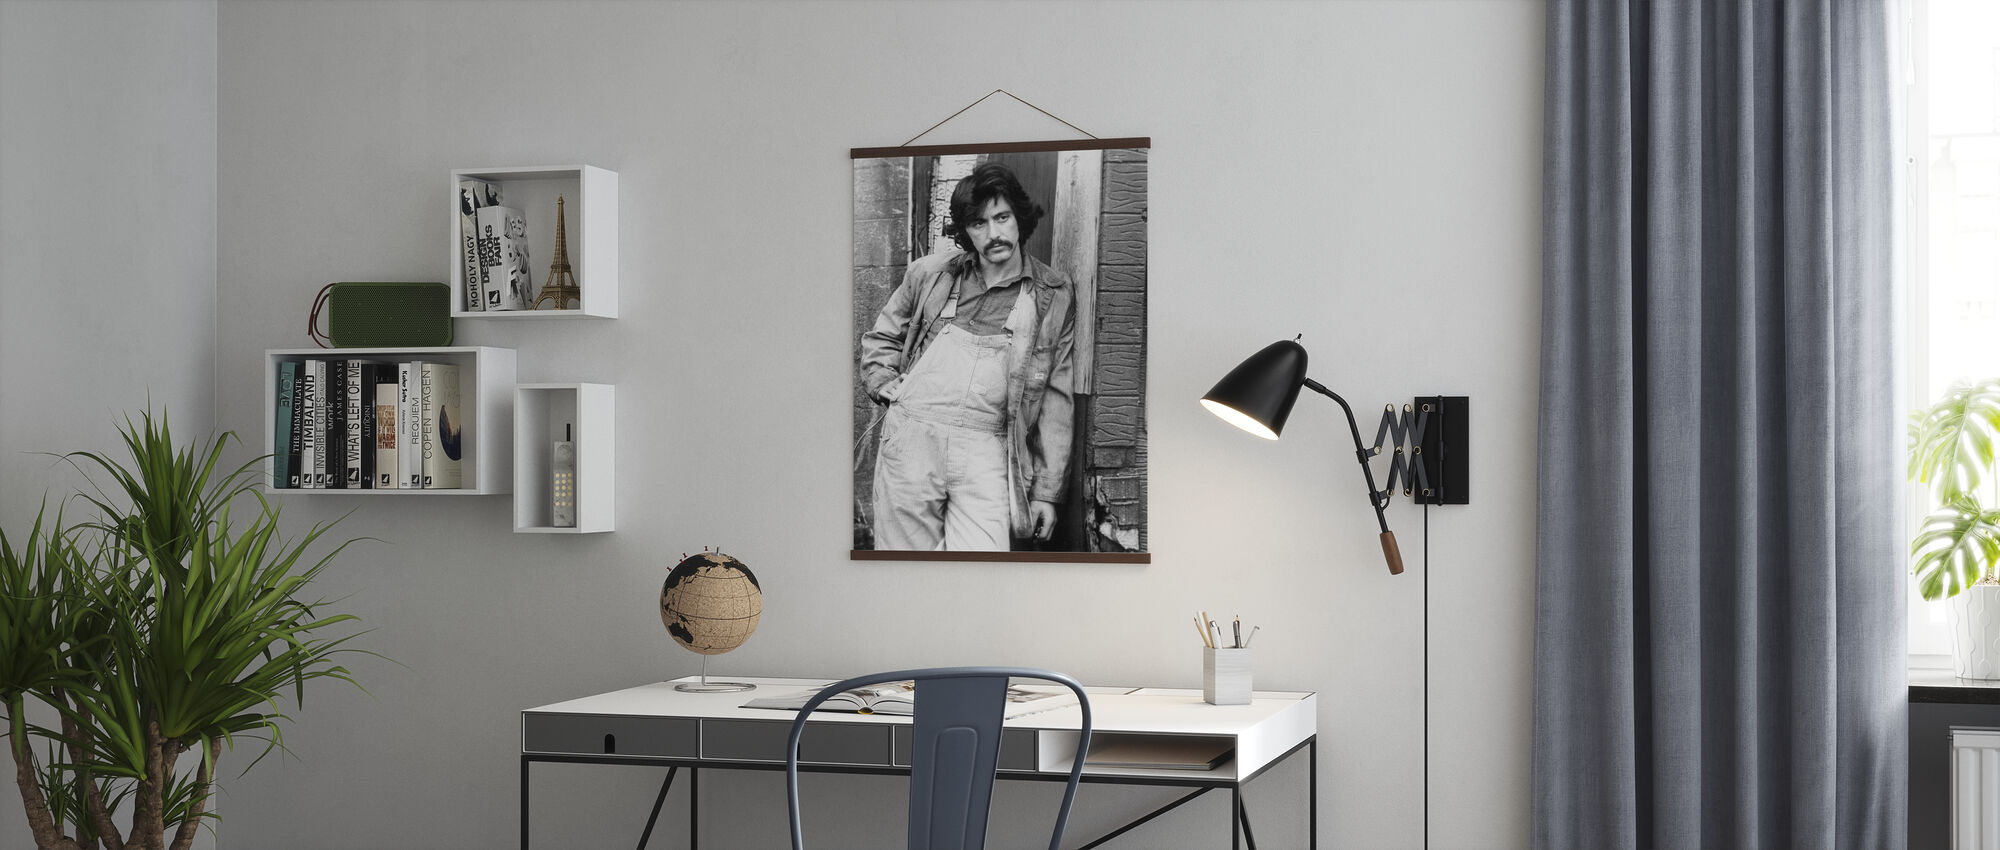 Serpico - Poster - Office